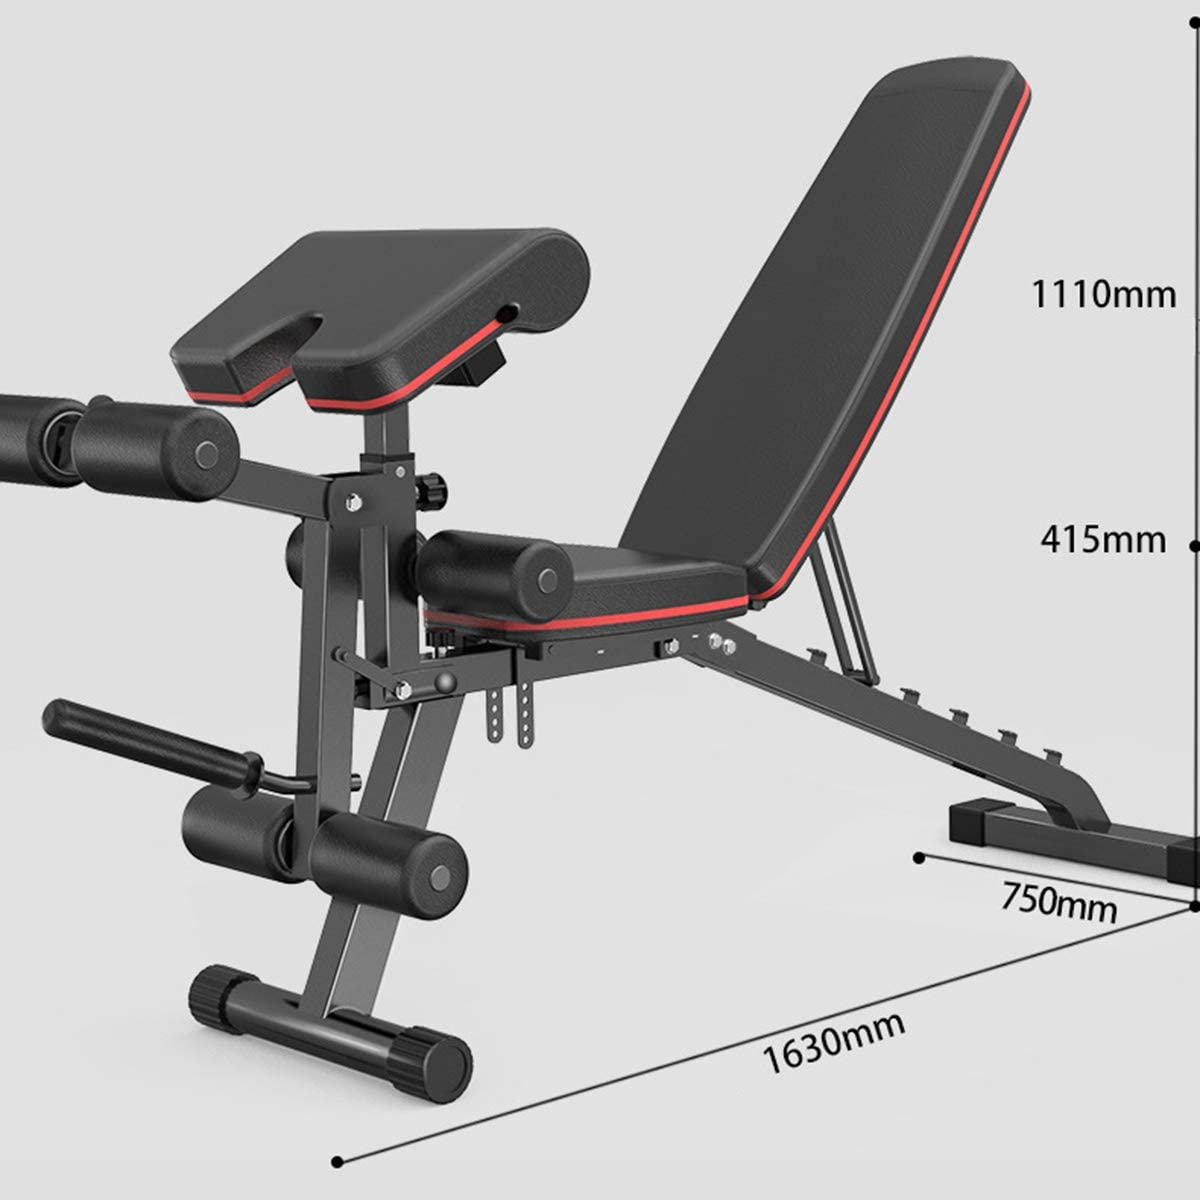 Home Gym Ycrdtap Folding Weight Bench with Preacher Curl Maximum Load 300 Kg for Full Body Exercises Weight Bench with Leg Extension And Leg Curl 7-Way Adjustable Backrest